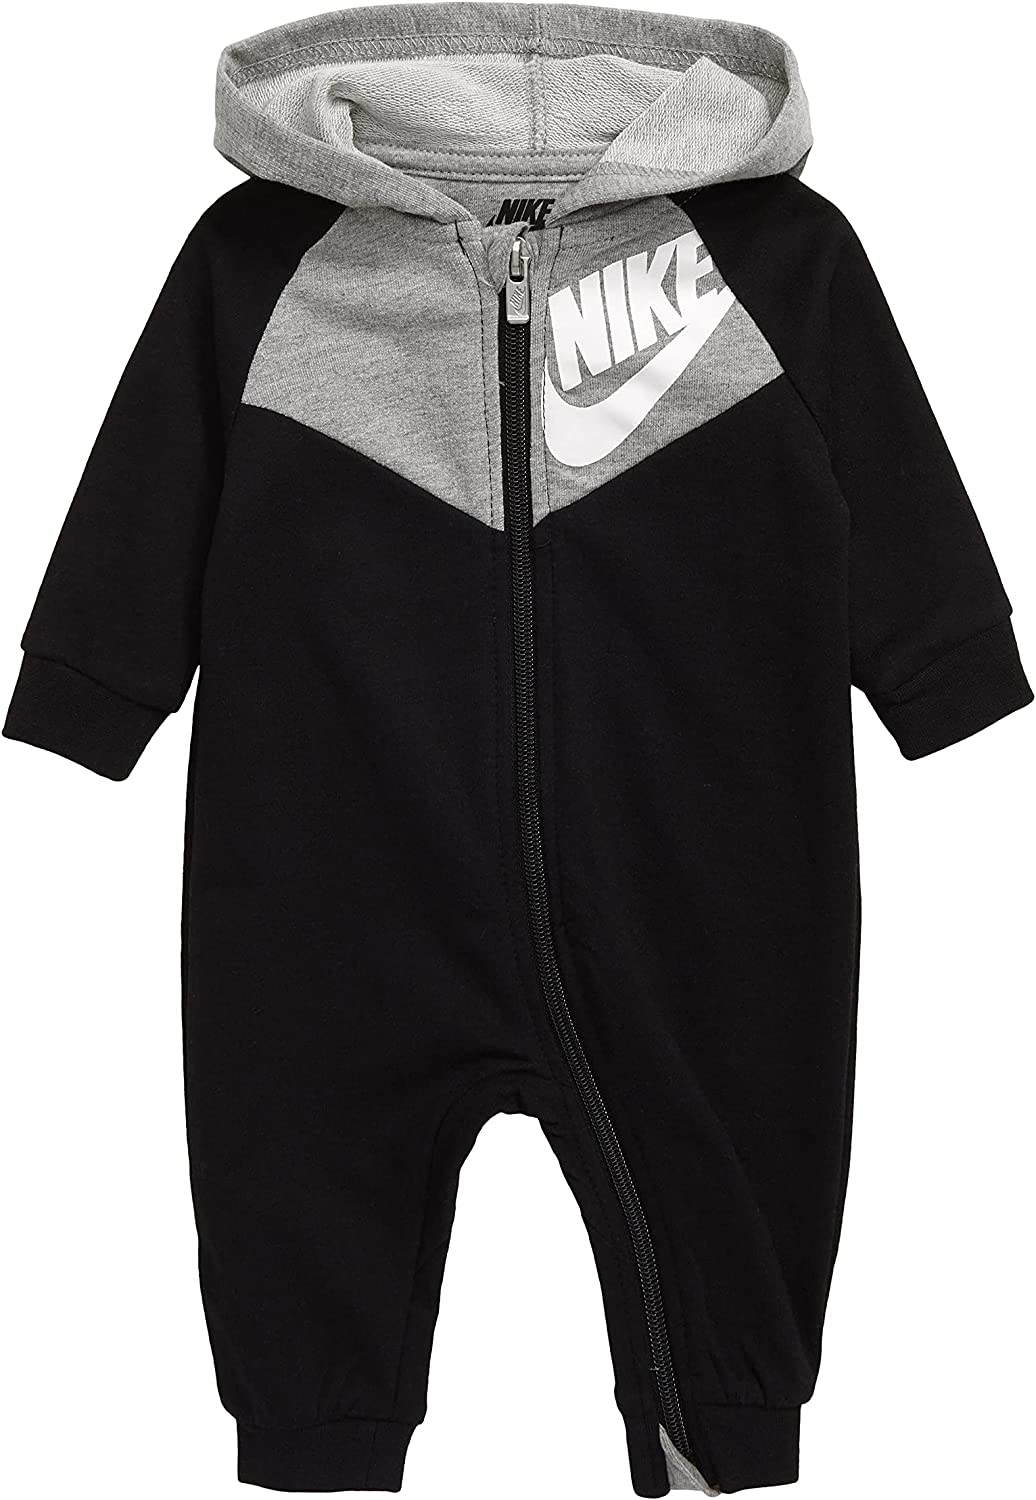 Nike Baby Girl Sportswear Year-end gift Overseas parallel import regular item Coverall